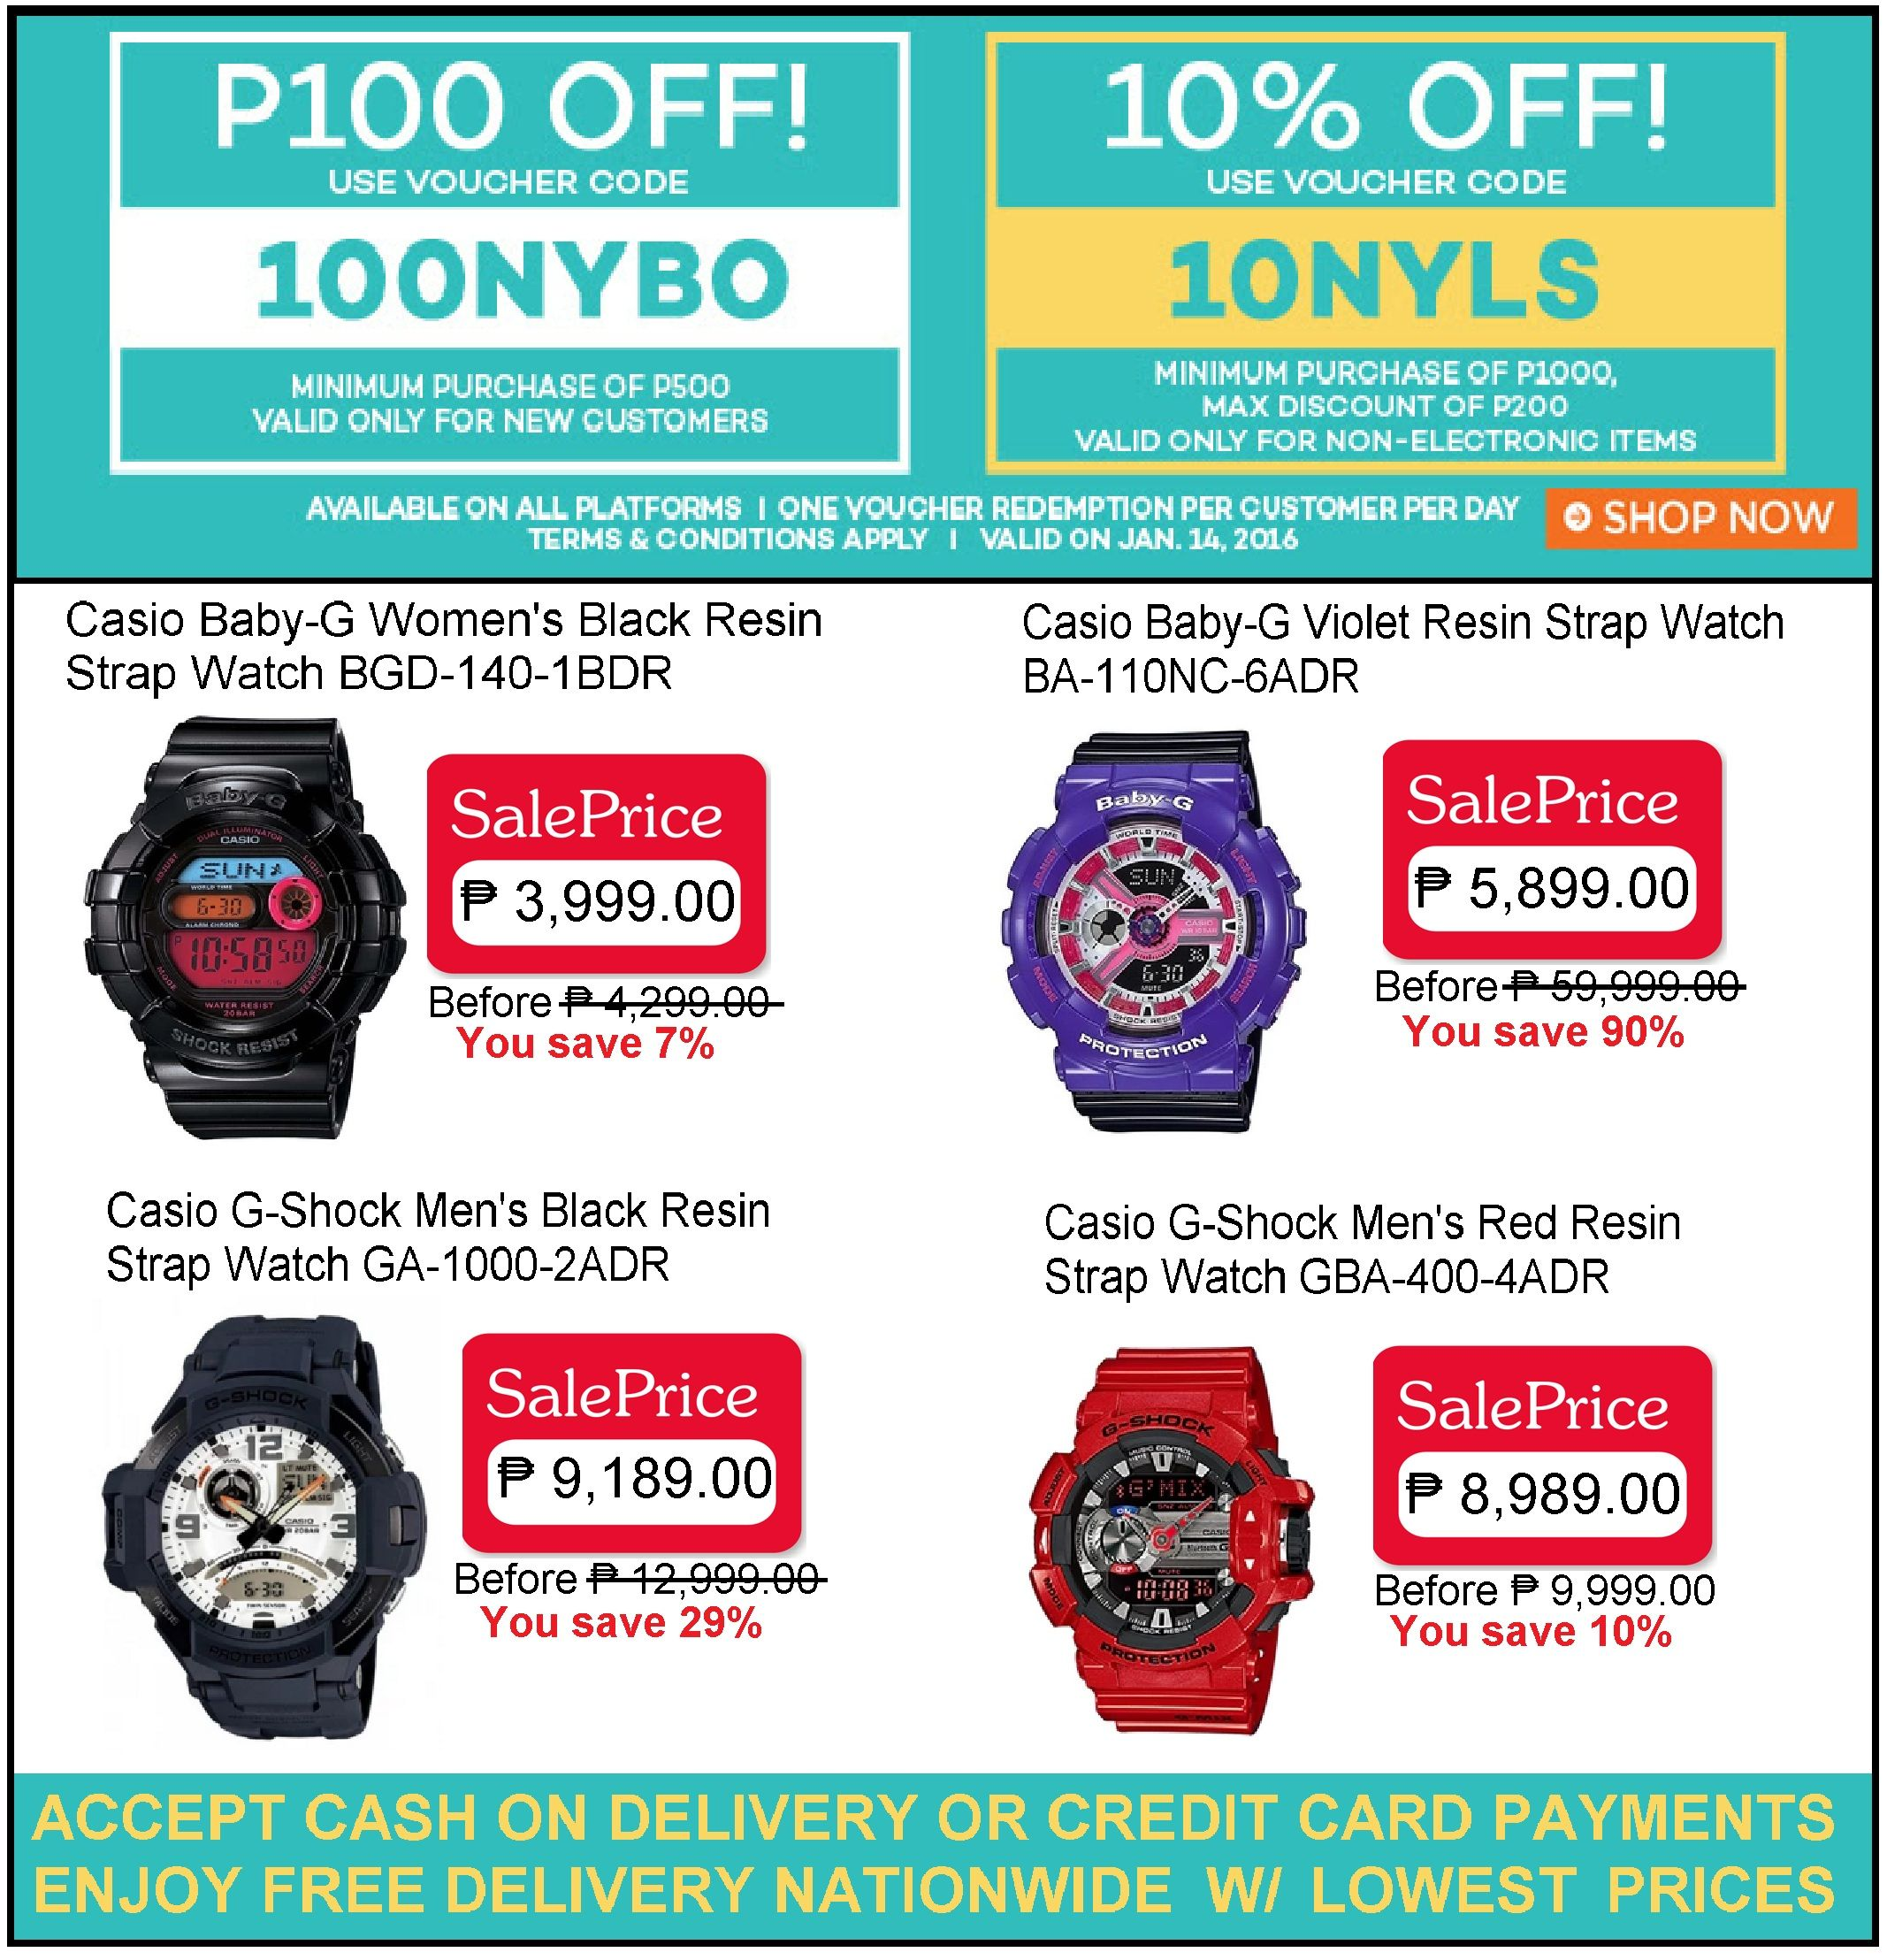 CASIO WATCH SALE LAZADA S NEW YEAR BLOW OUT PROMO SAVE P100 & 10